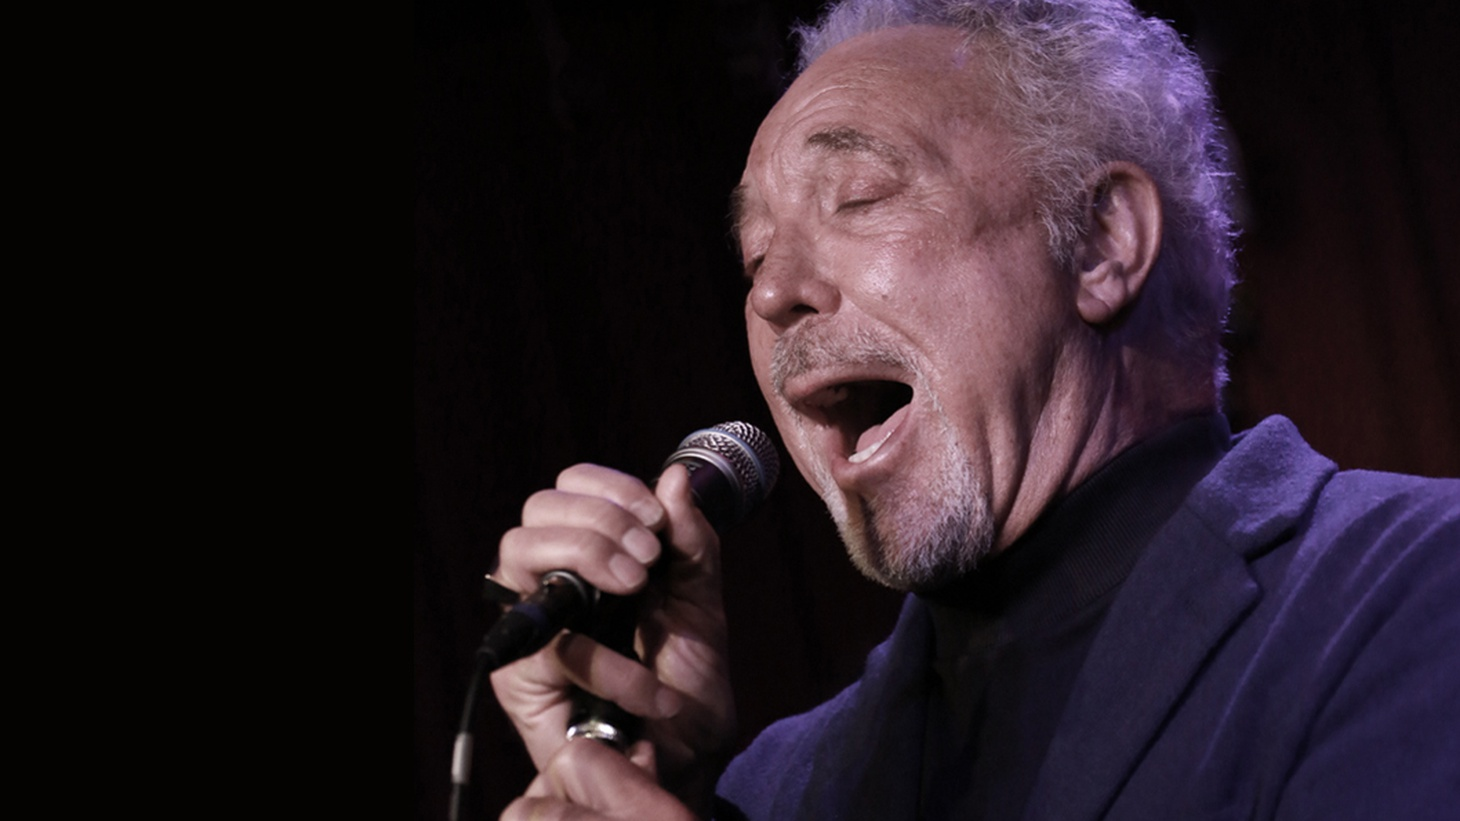 Sir Tom Jones has sold over 100 million records and just released his autobiography and a new album,Long Lost Suitcase. At 75, he sounds better than ever.